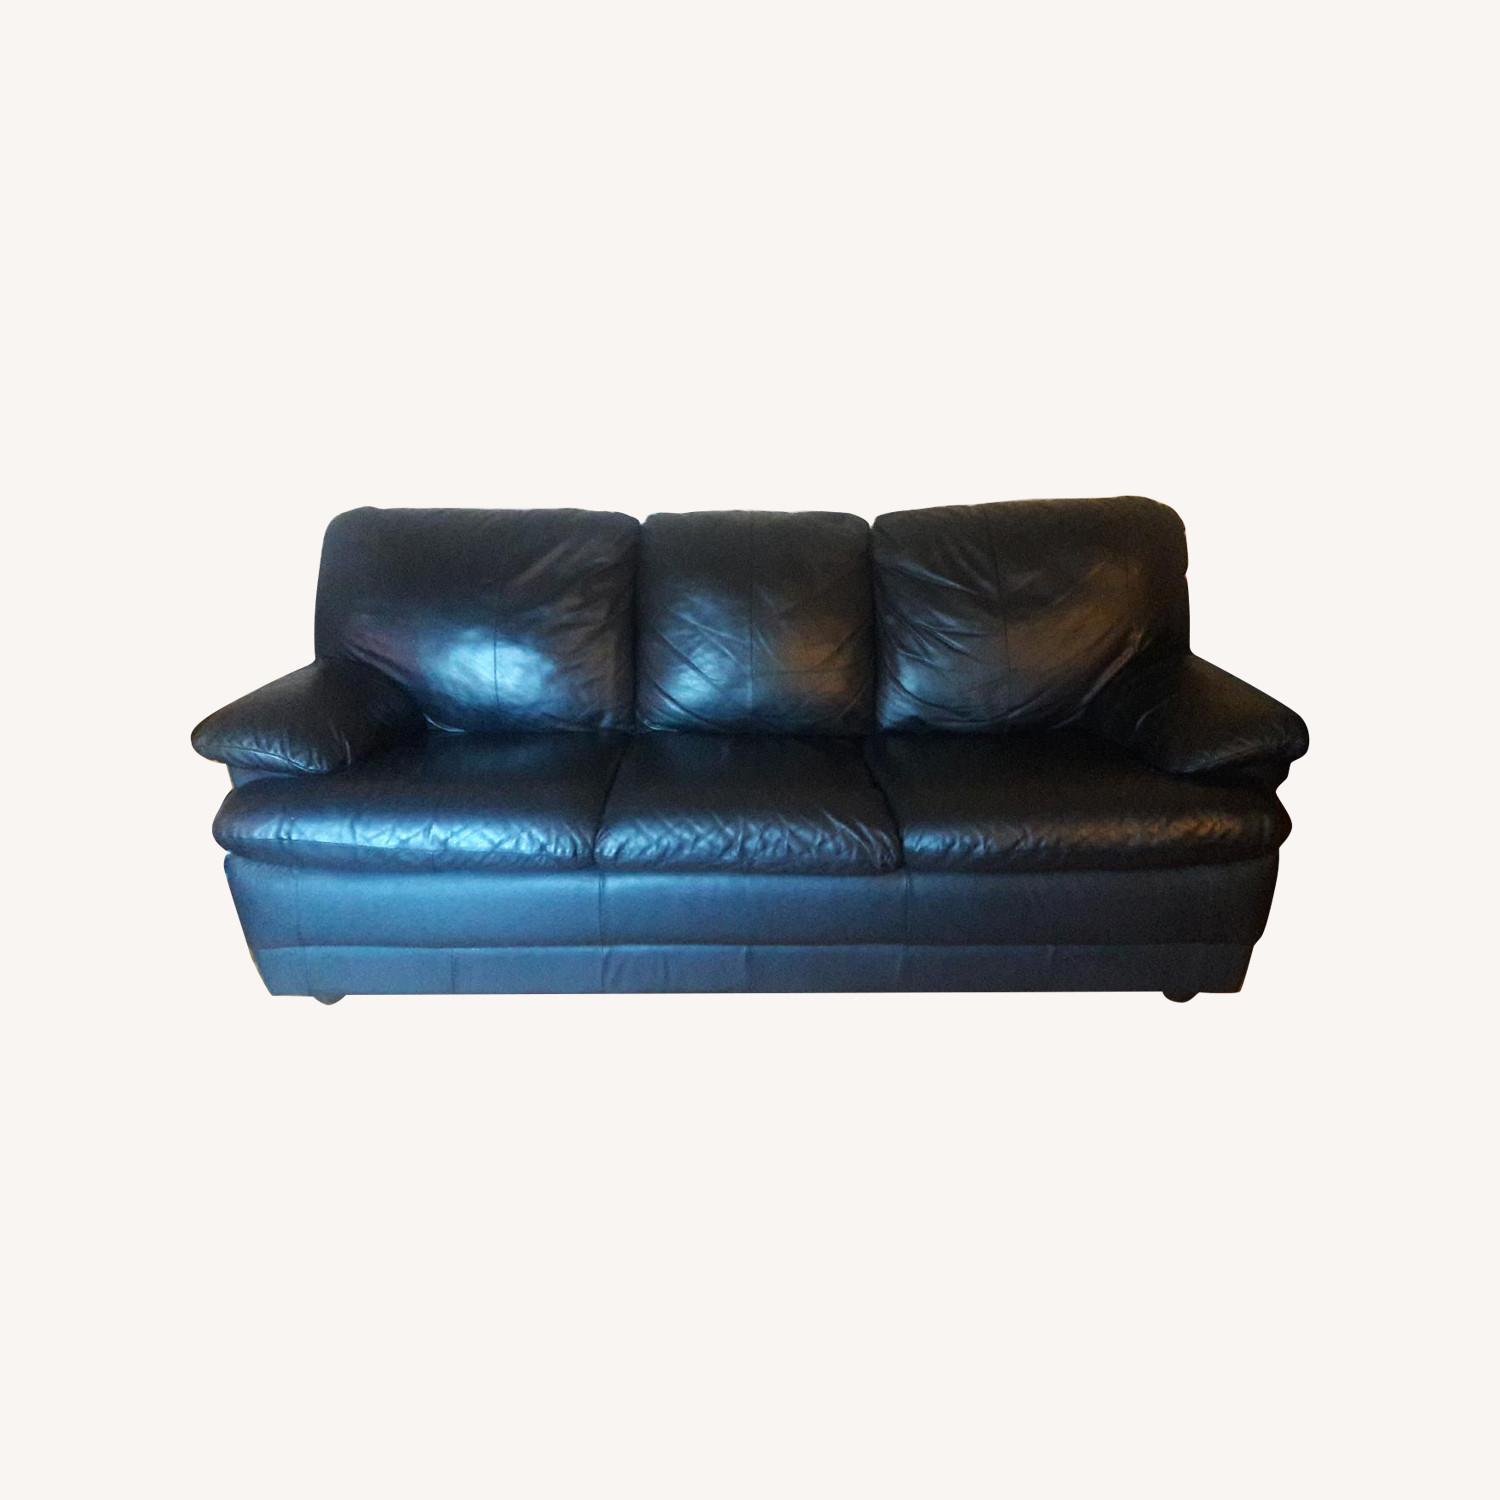 Black Leather Sofa - image-0